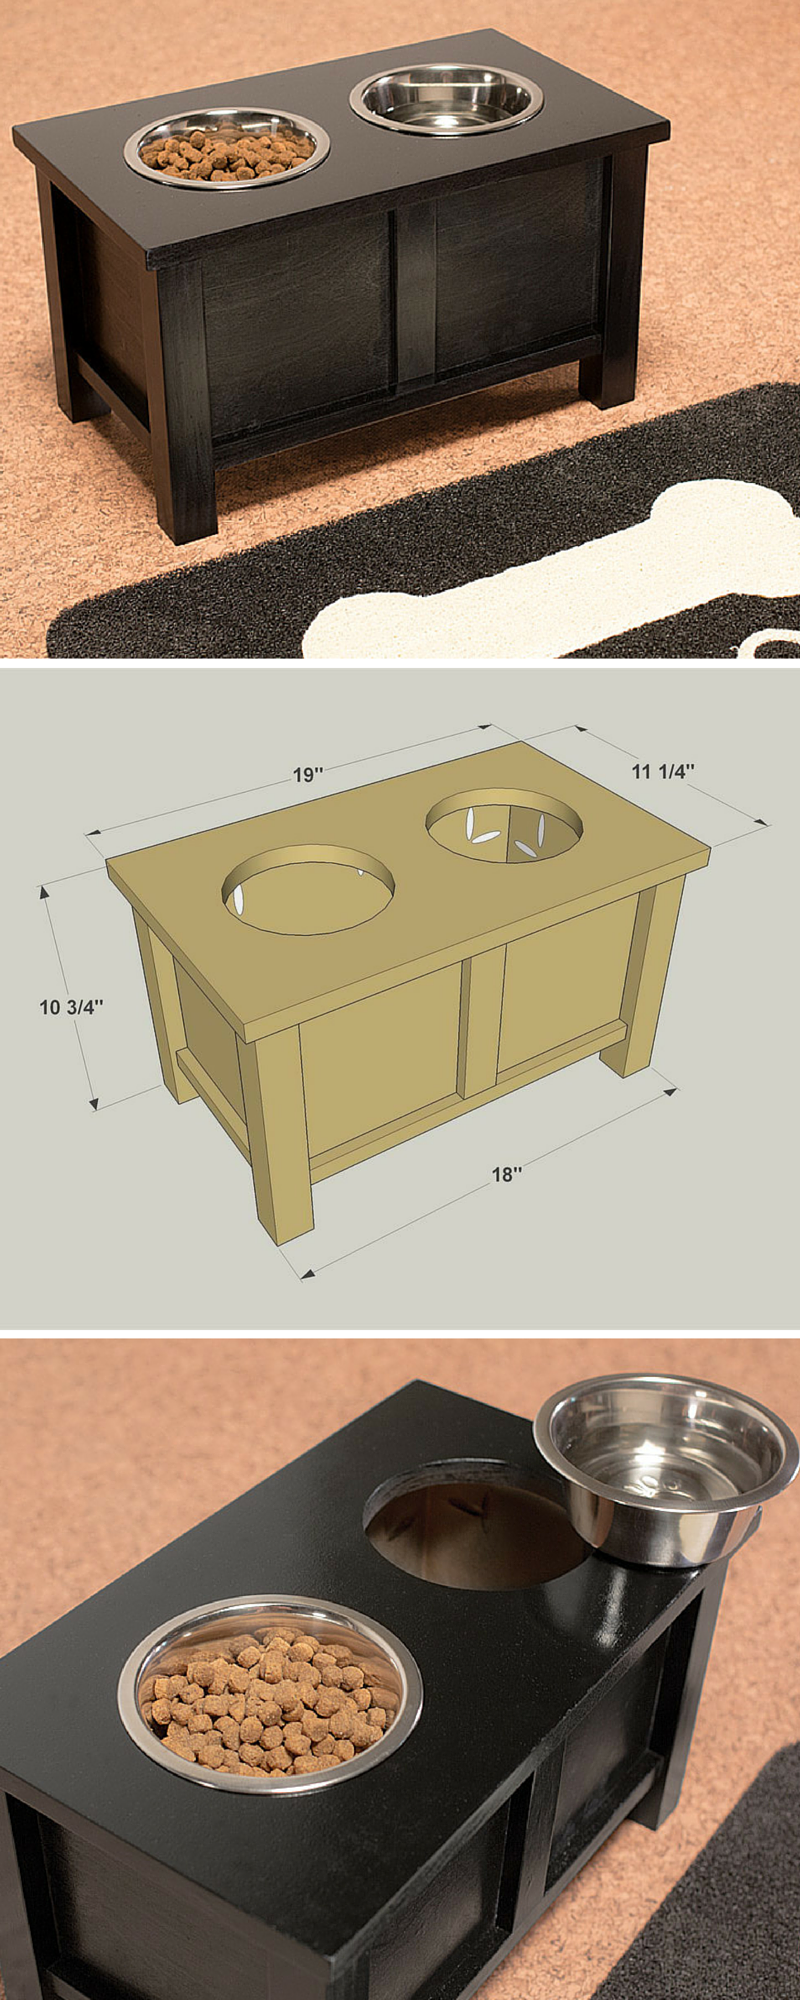 small resolution of how to build a diy raised dog bowl stand free printable project plans at buildsomething com elevate your dog s dining experience with a raised stand for